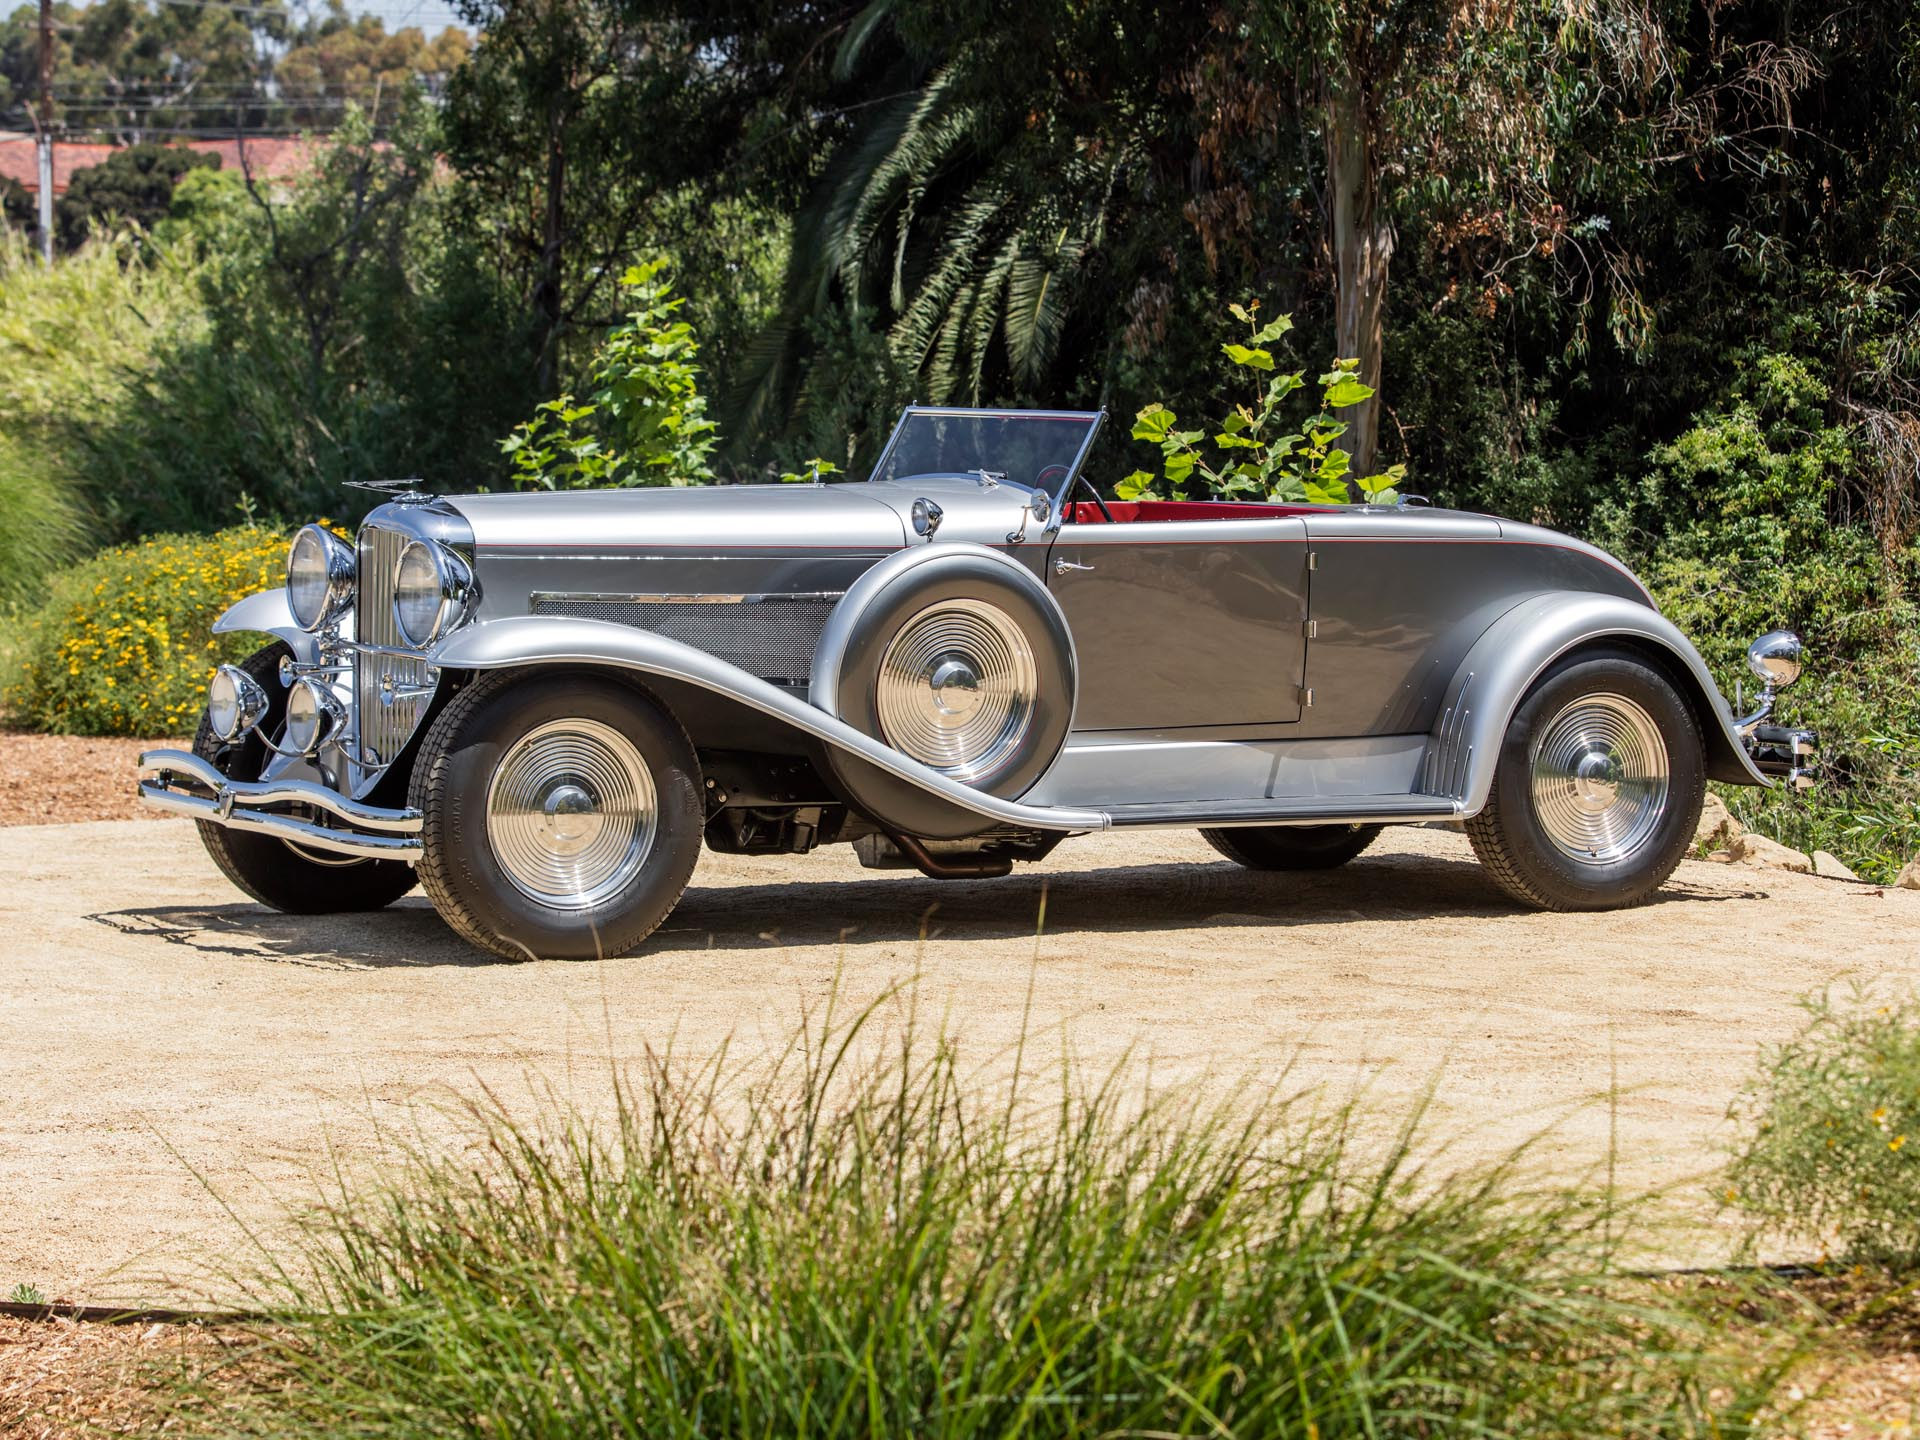 2007 Duesenberg II  'Murphy Disappearing-Top' Roadster